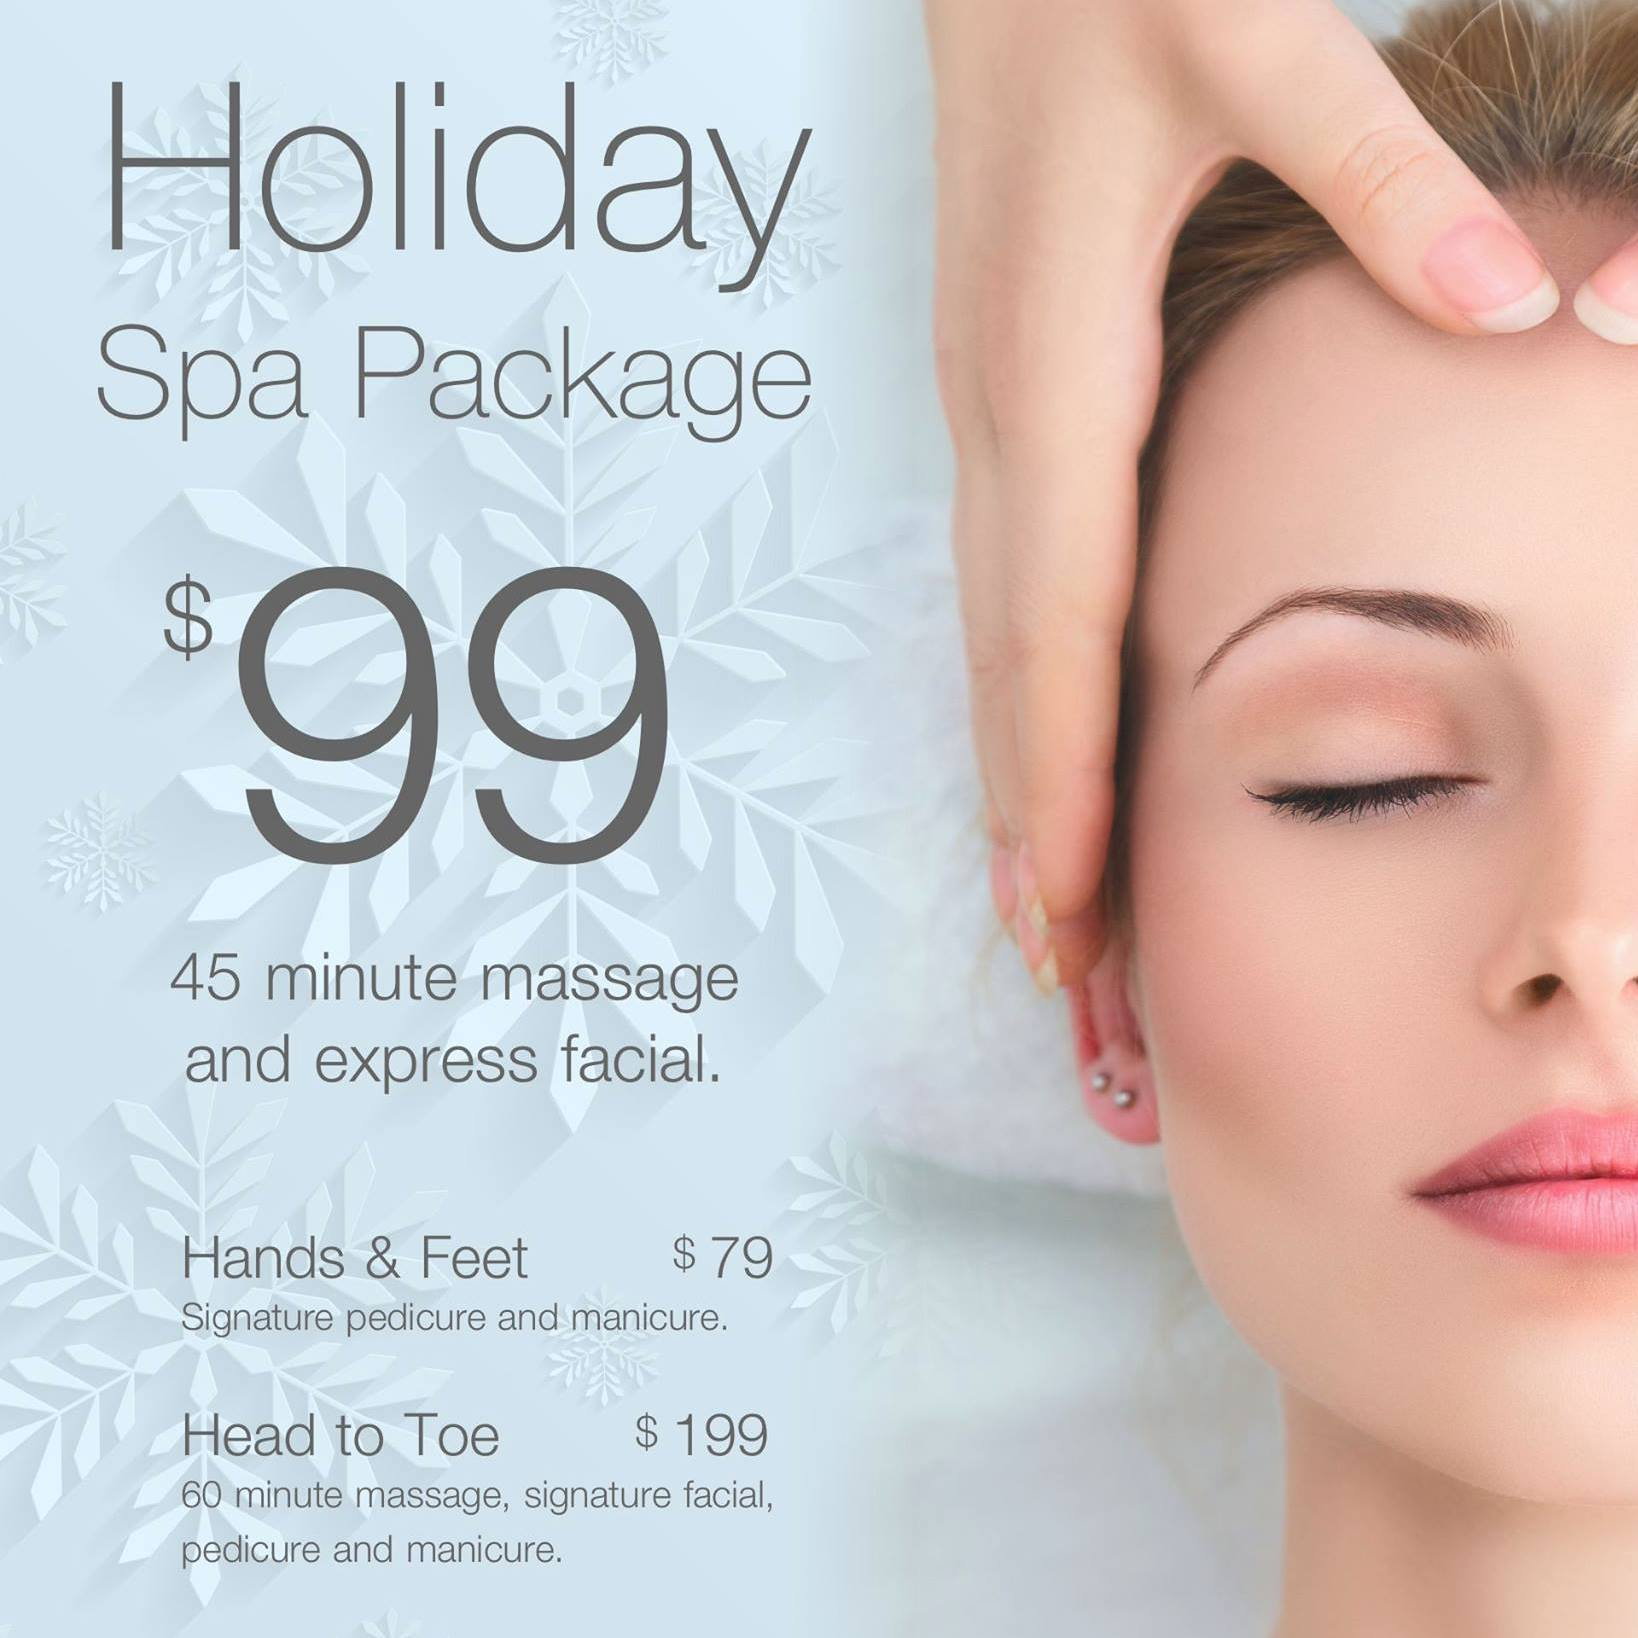 Holiday Spa Package at Phresh Spa Salon at The Shops at West End